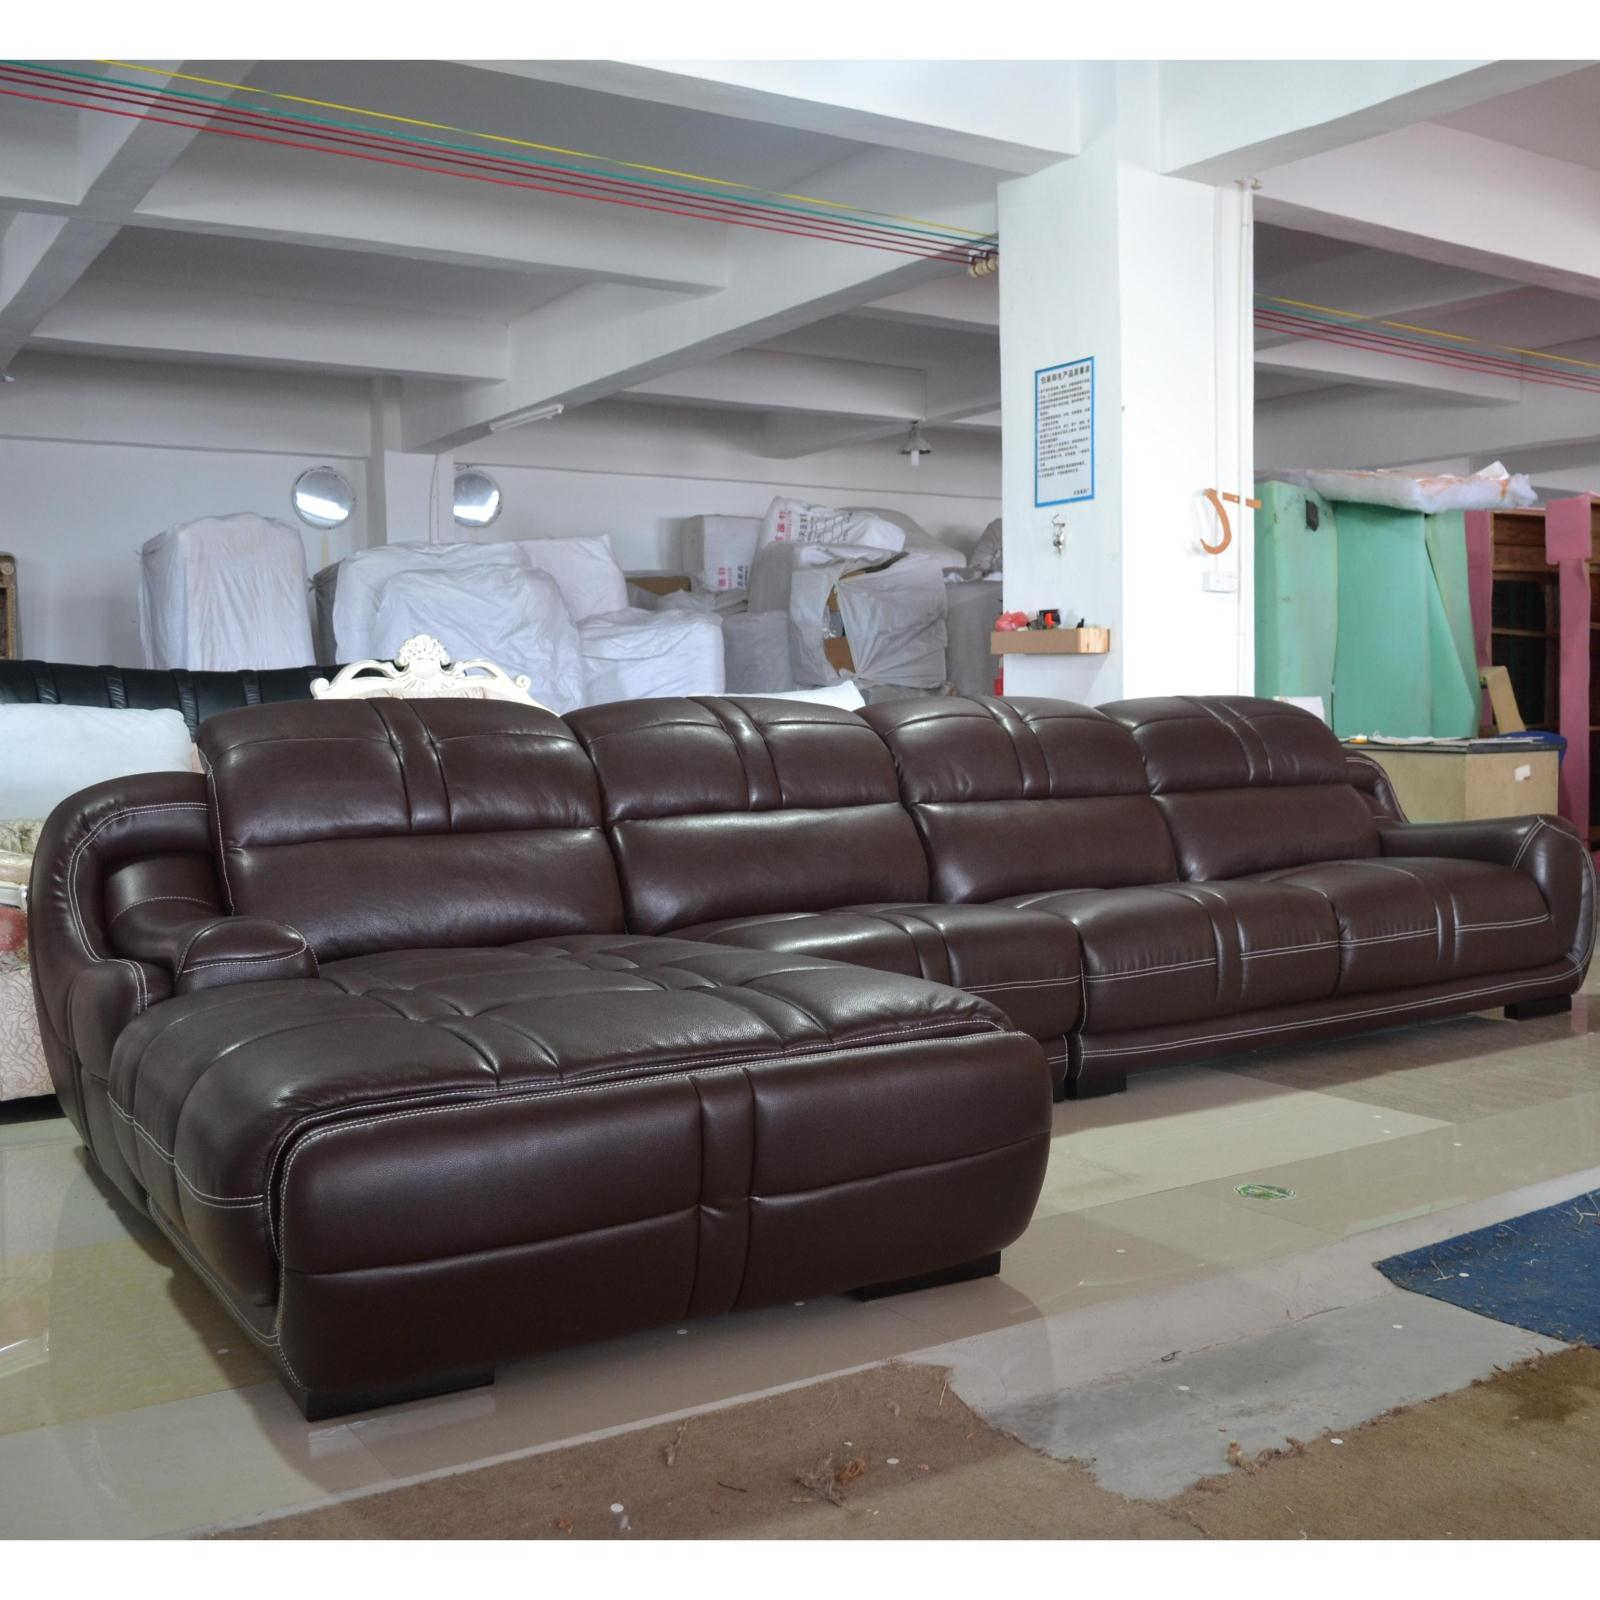 Yang ming ju authentic modern casual living room corner sofa combination of first layer of imported leather minimalist leather sofa in the thick